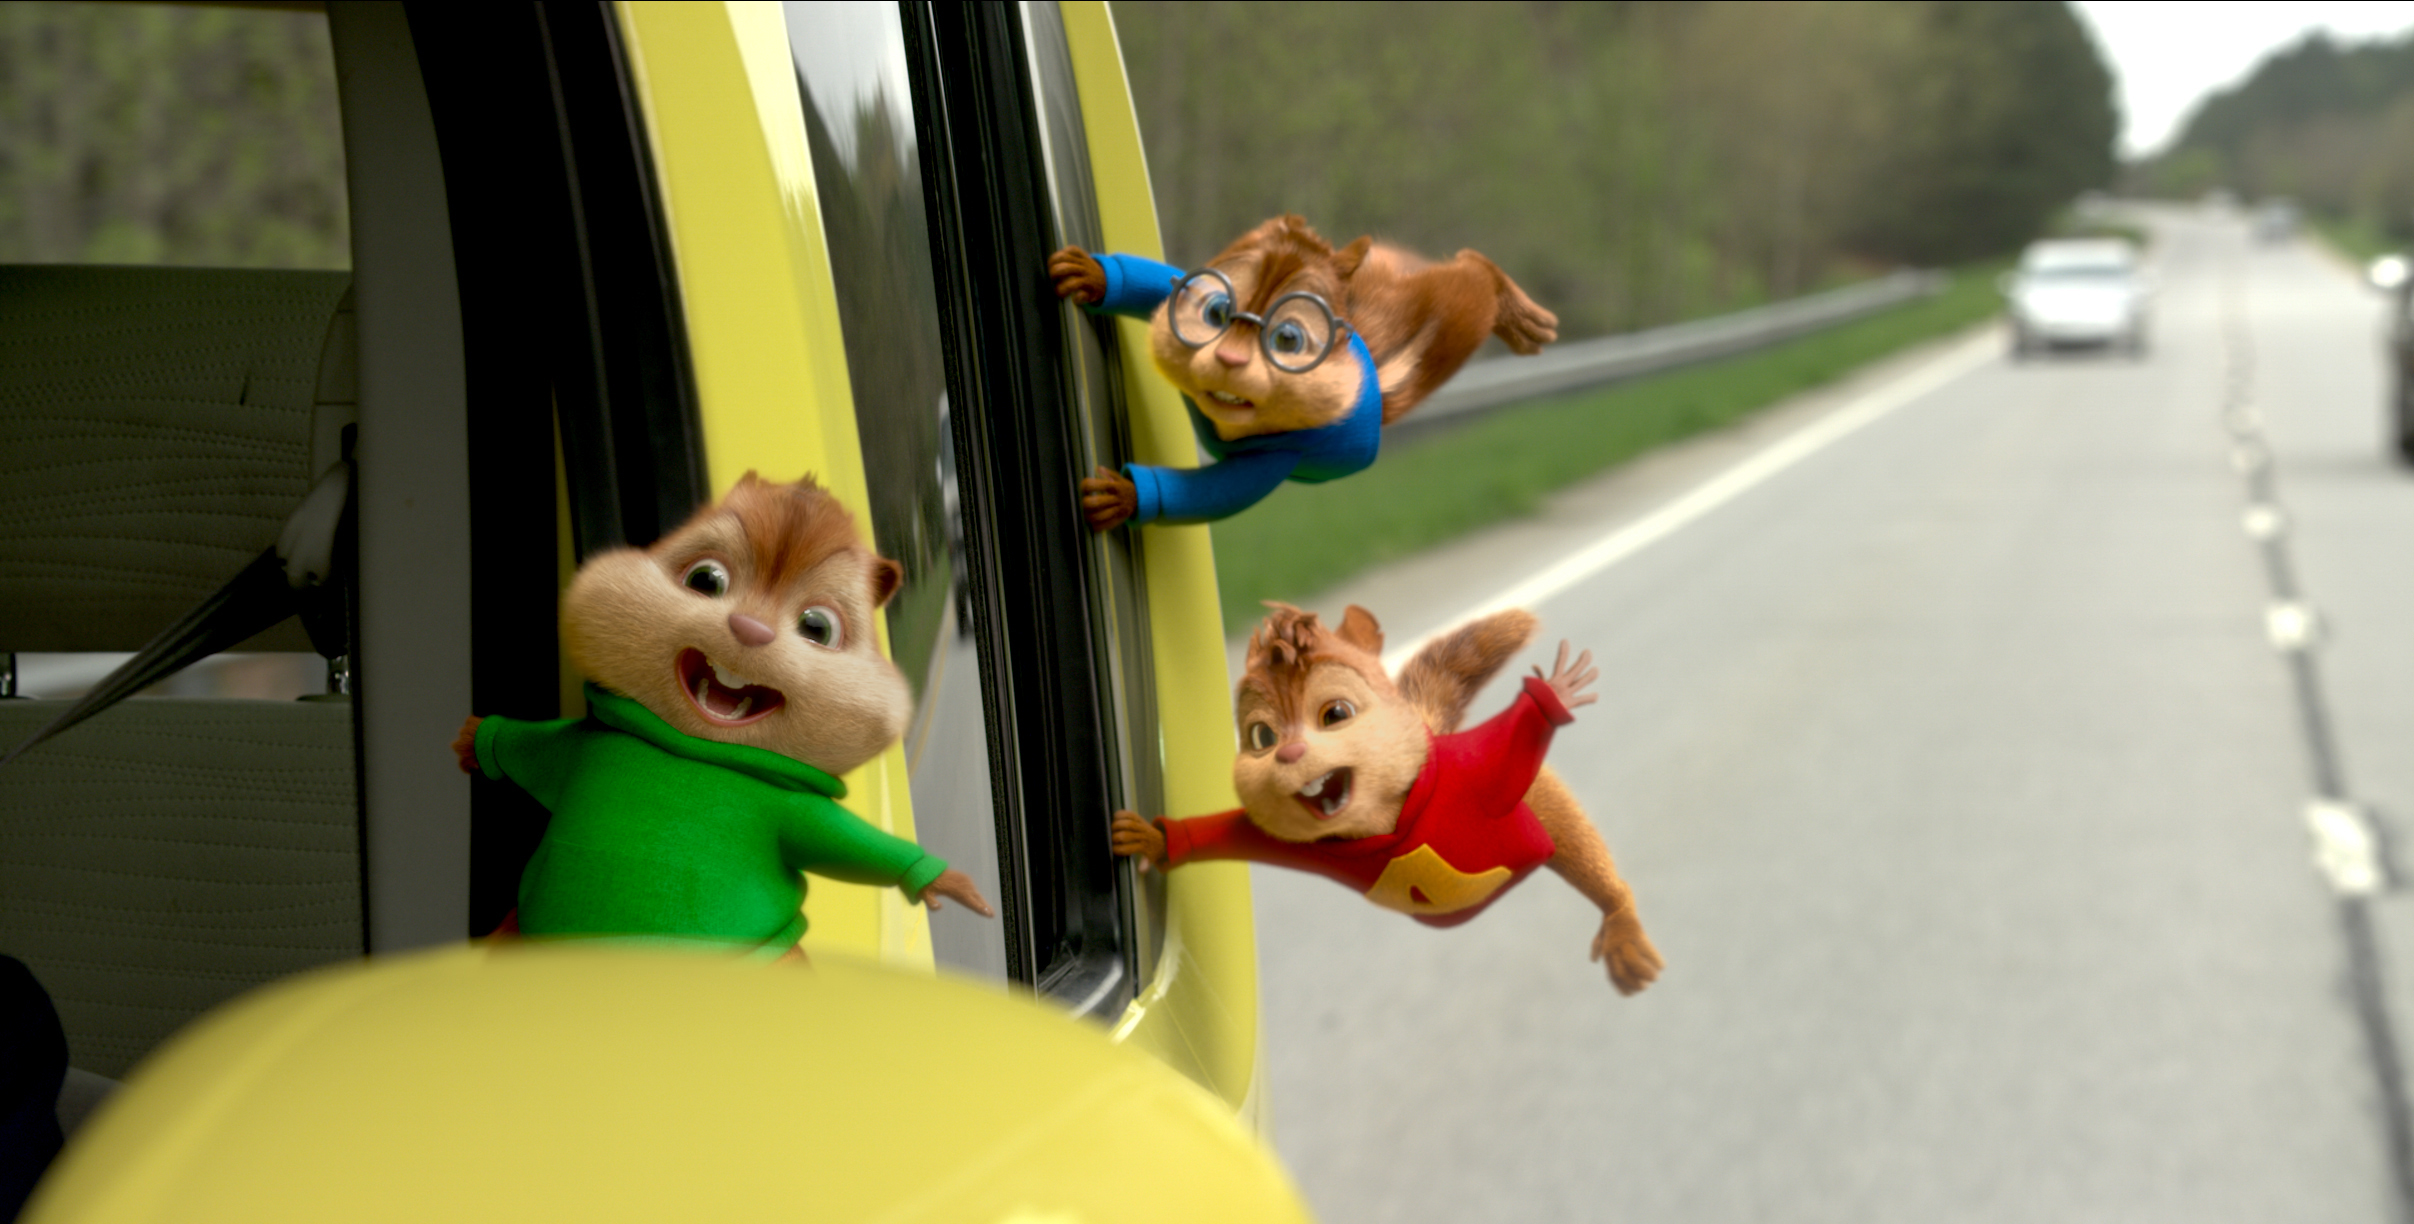 mk0060_v9787316.0079 Theodore, Alvin, and Simon go on a wild Òroad chipÓ in ALVIN AND THE CHIPMUNKS: THE ROAD CHIP. Photo Credit: Courtesy Twentieth Century Fox Alvin and the Chipmunks, the Chipettes and Charactersʪ &Ê© 2015 BagdasarianÊProductions, LLC.Ê All rights reserved.Ê© 2015 Twentieth Century Fox Film Corporation.Ê All rights reserved. ÊNot for sale or duplication.